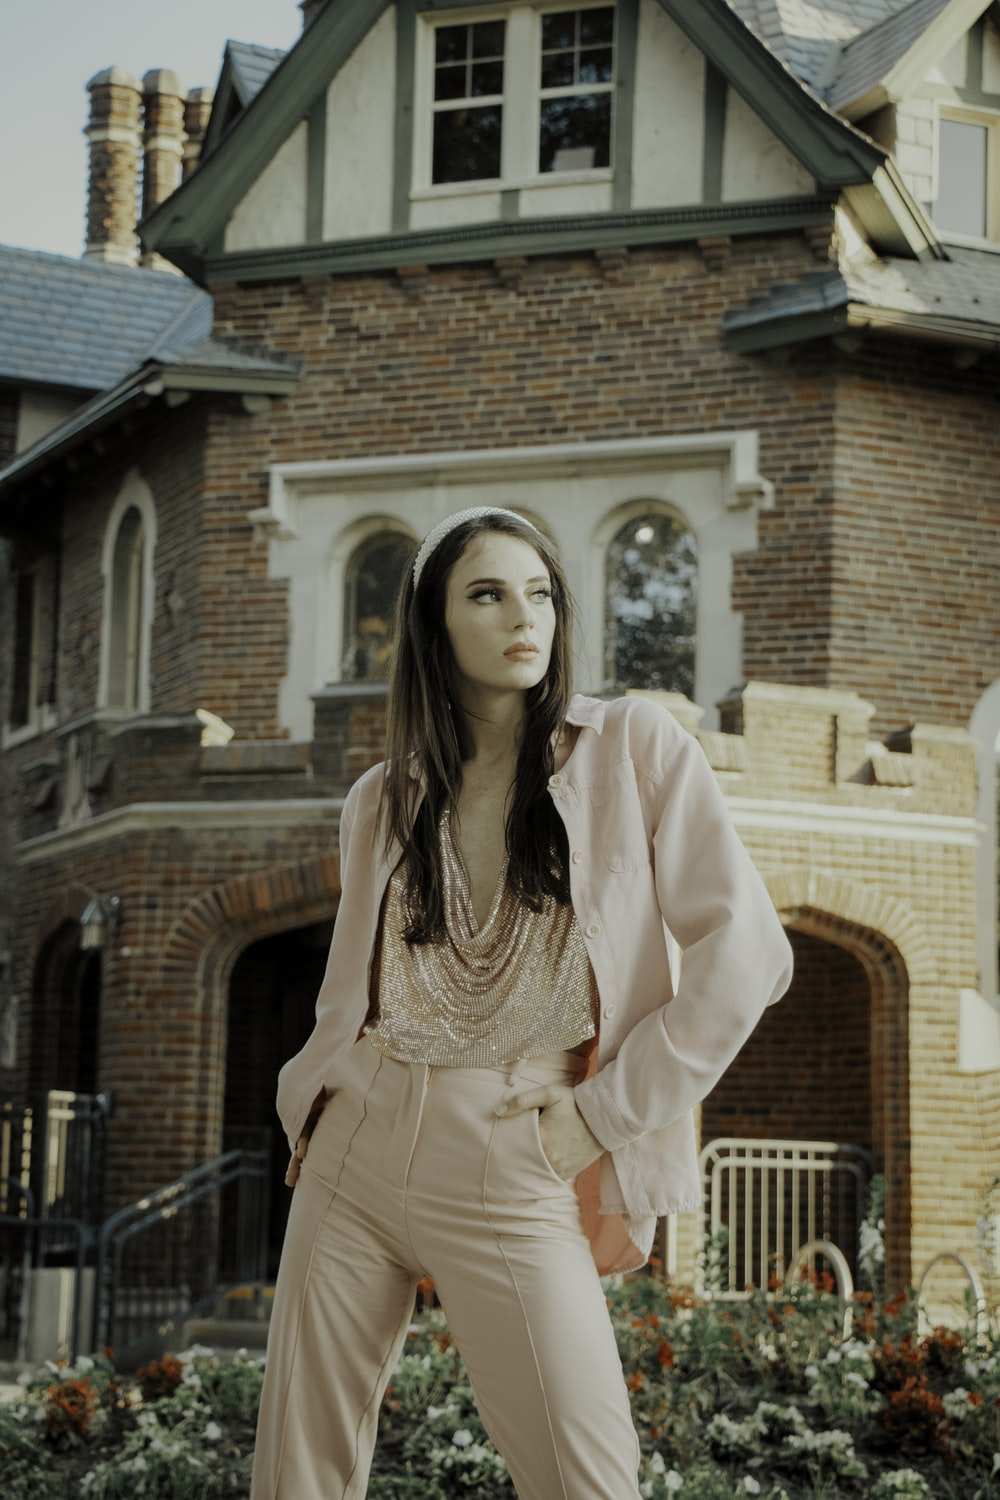 woman in pink long sleeve dress standing near brown brick building during daytime